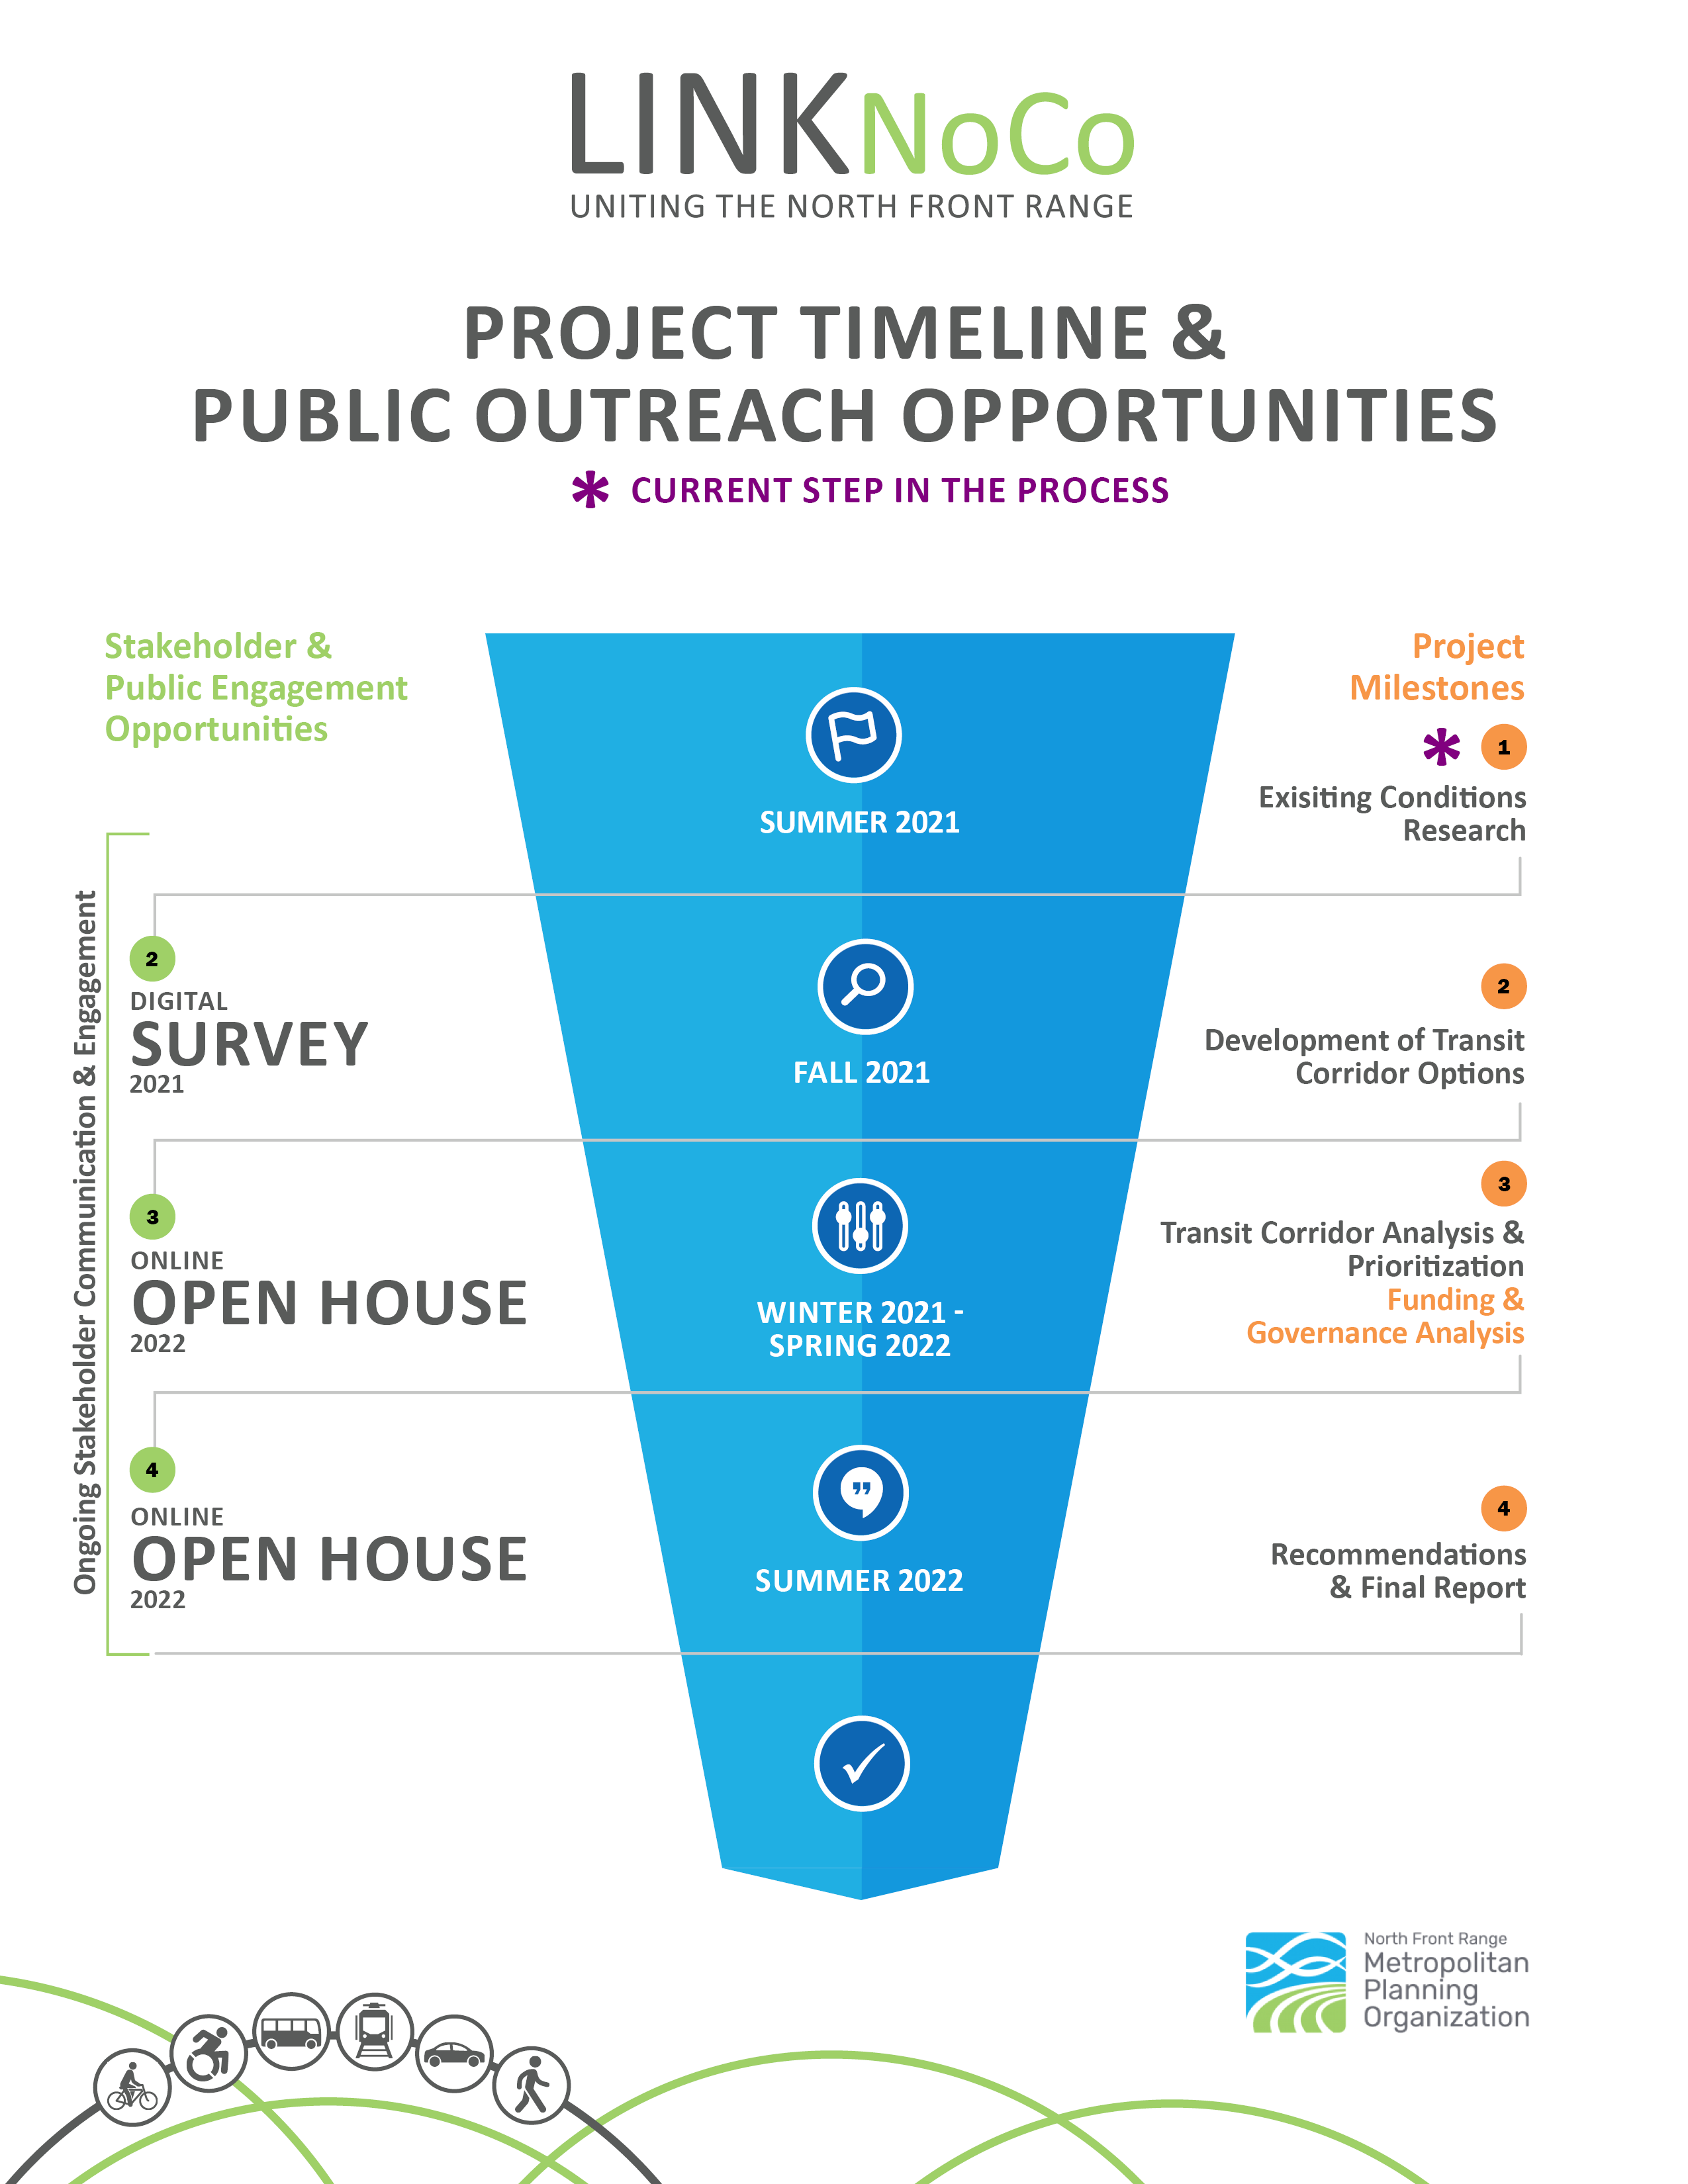 LinkNoCo Timeline showing public outreach and plan steps